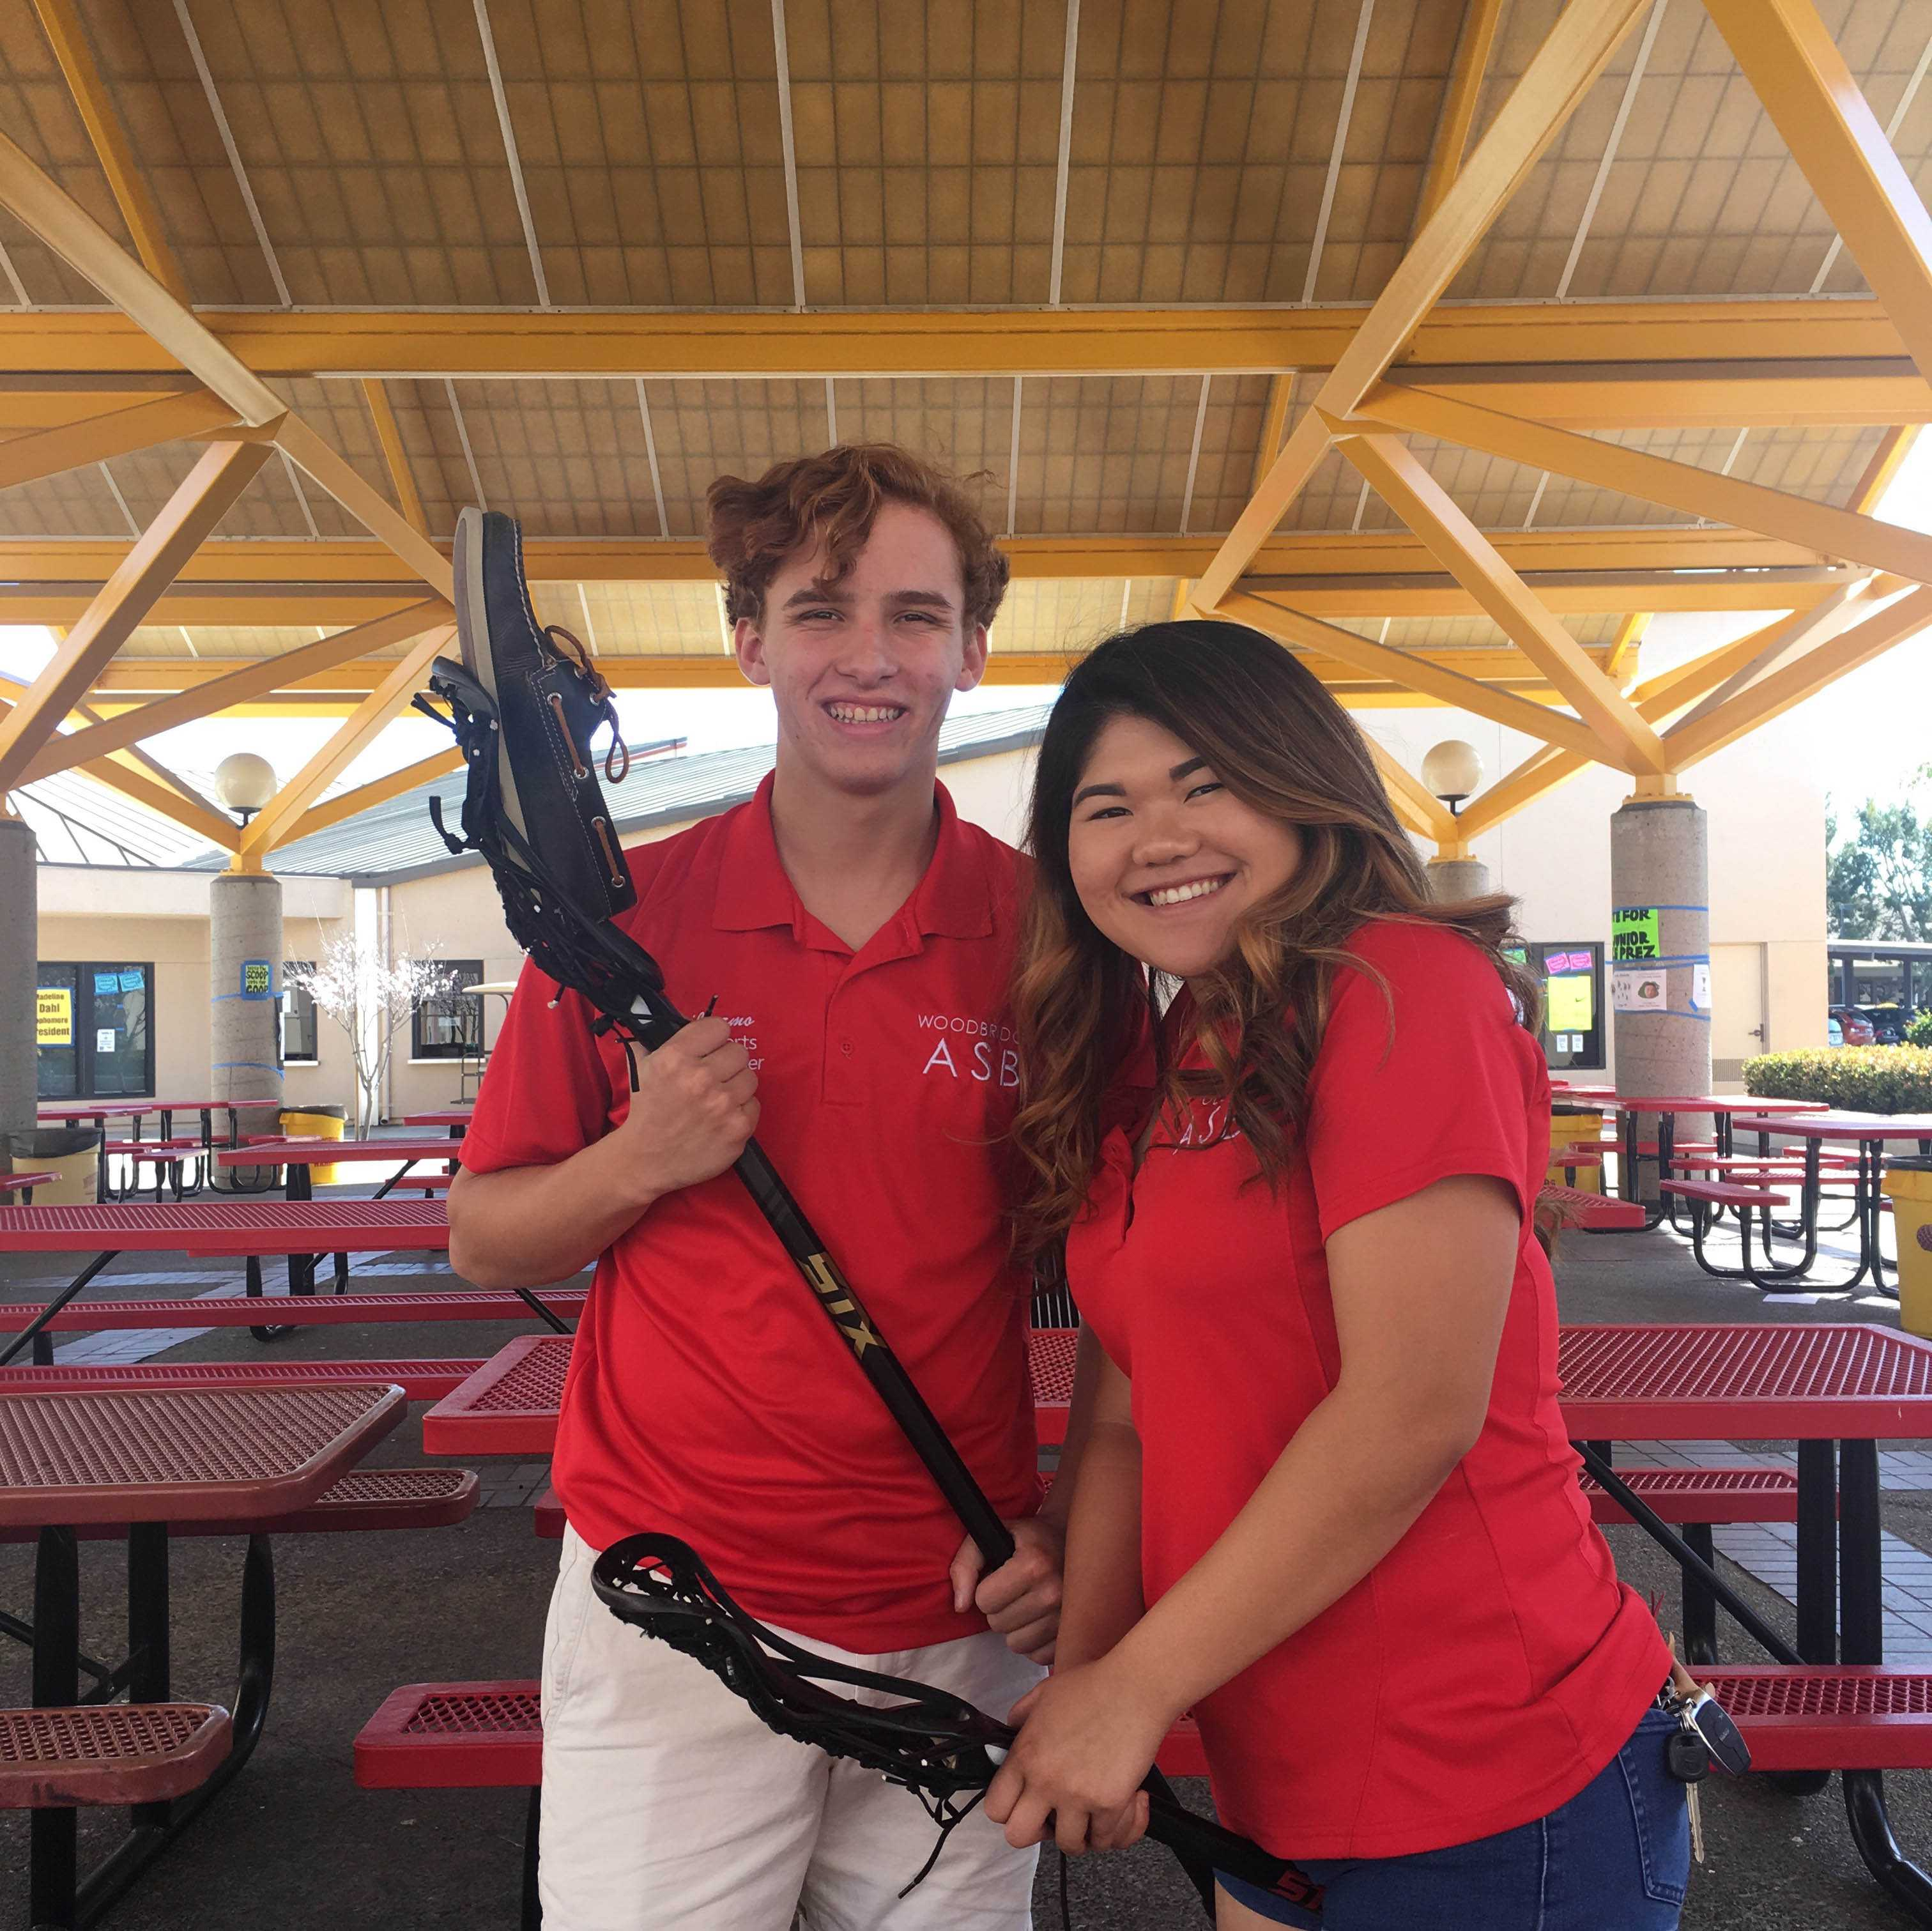 Senior sports commissioners Guillermo Mier y Teran and Mia Ajiro continue to spread spirit on campus by planning Game of the Weeks for athletes.